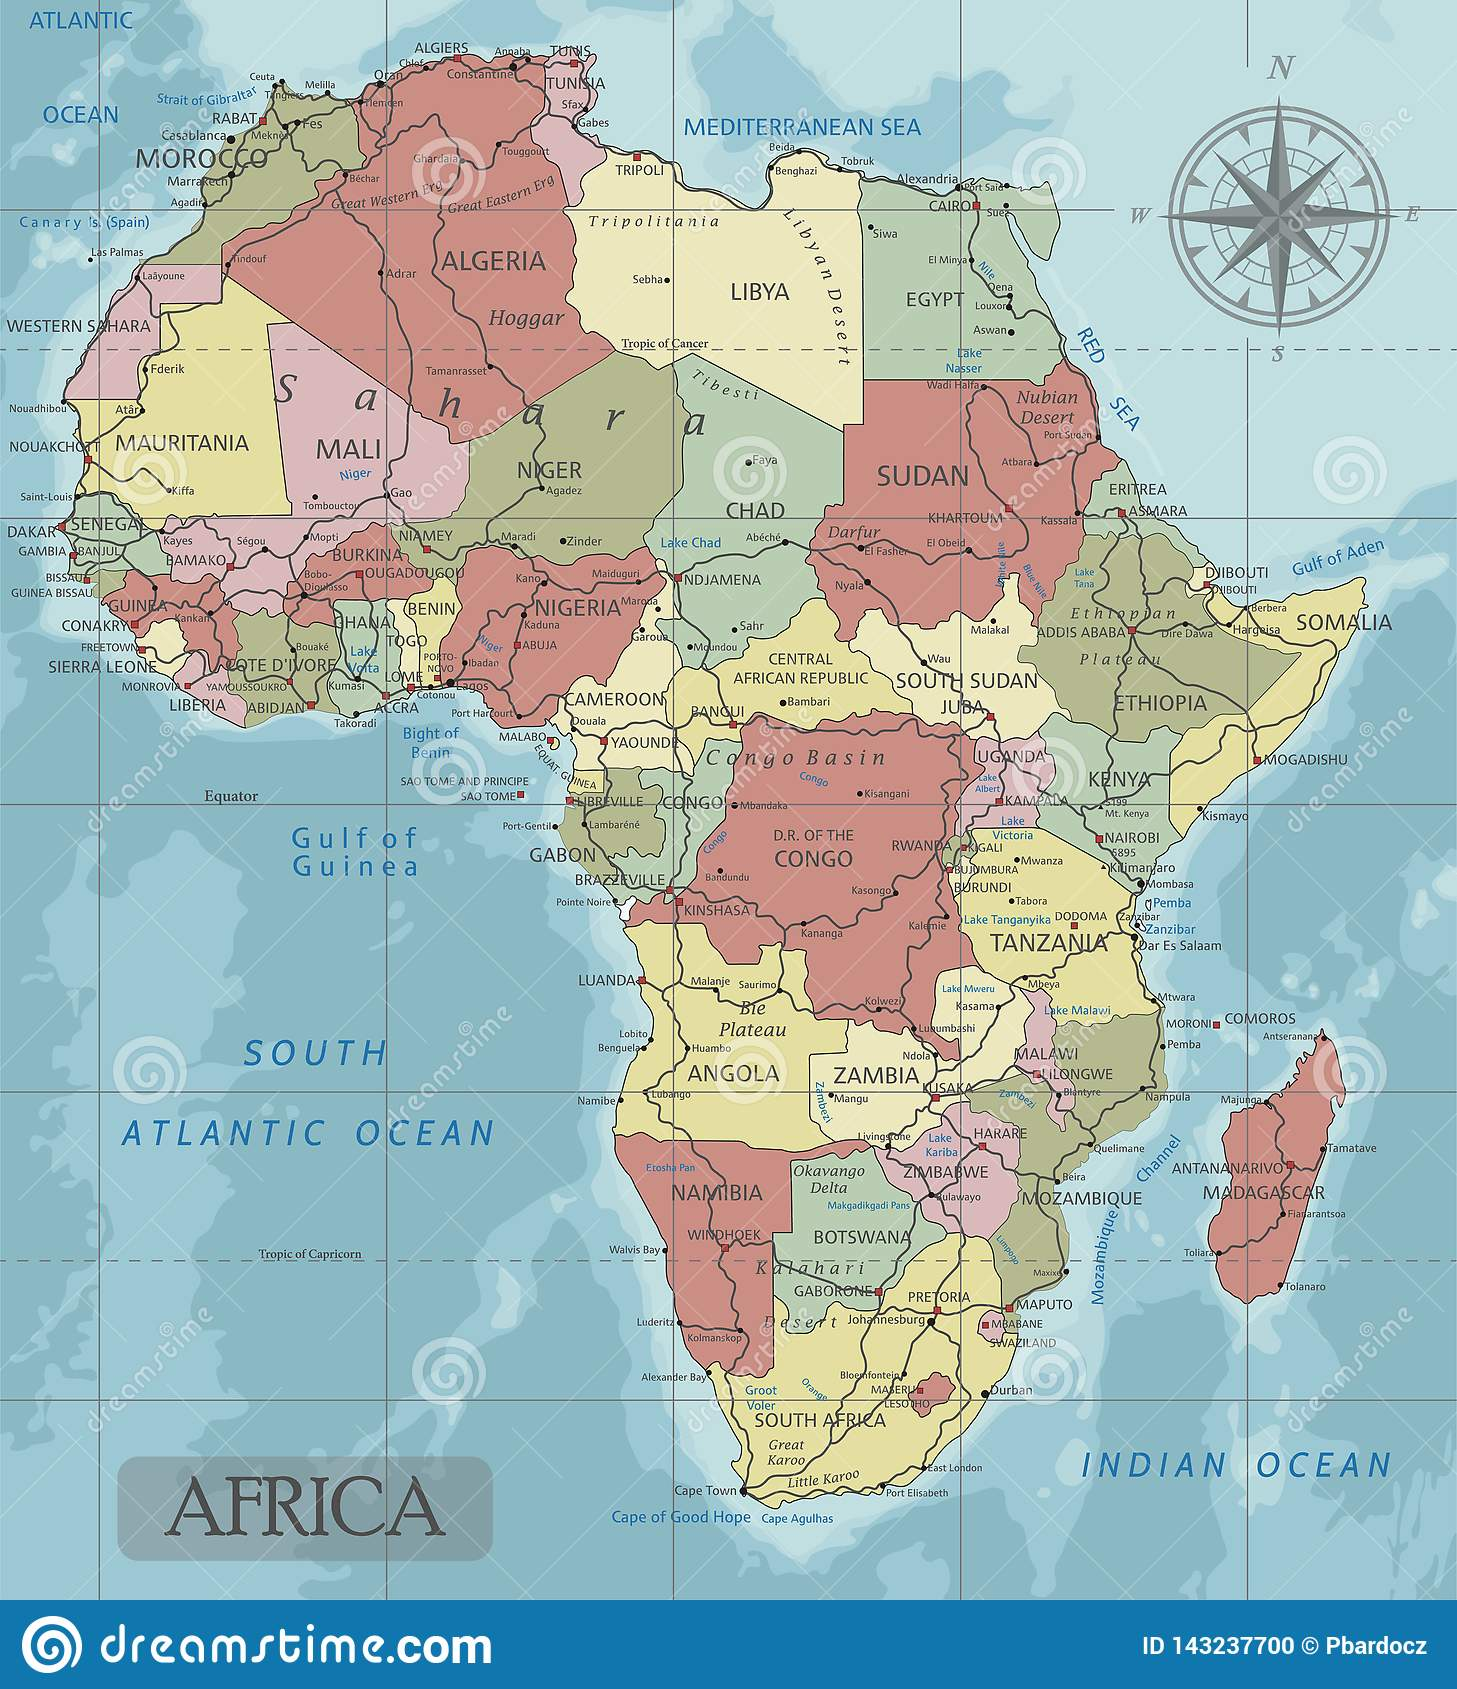 Detailed Africa Political Map In Mercator Projection Stock Vector Illustration Of Atlas Continent 143237700